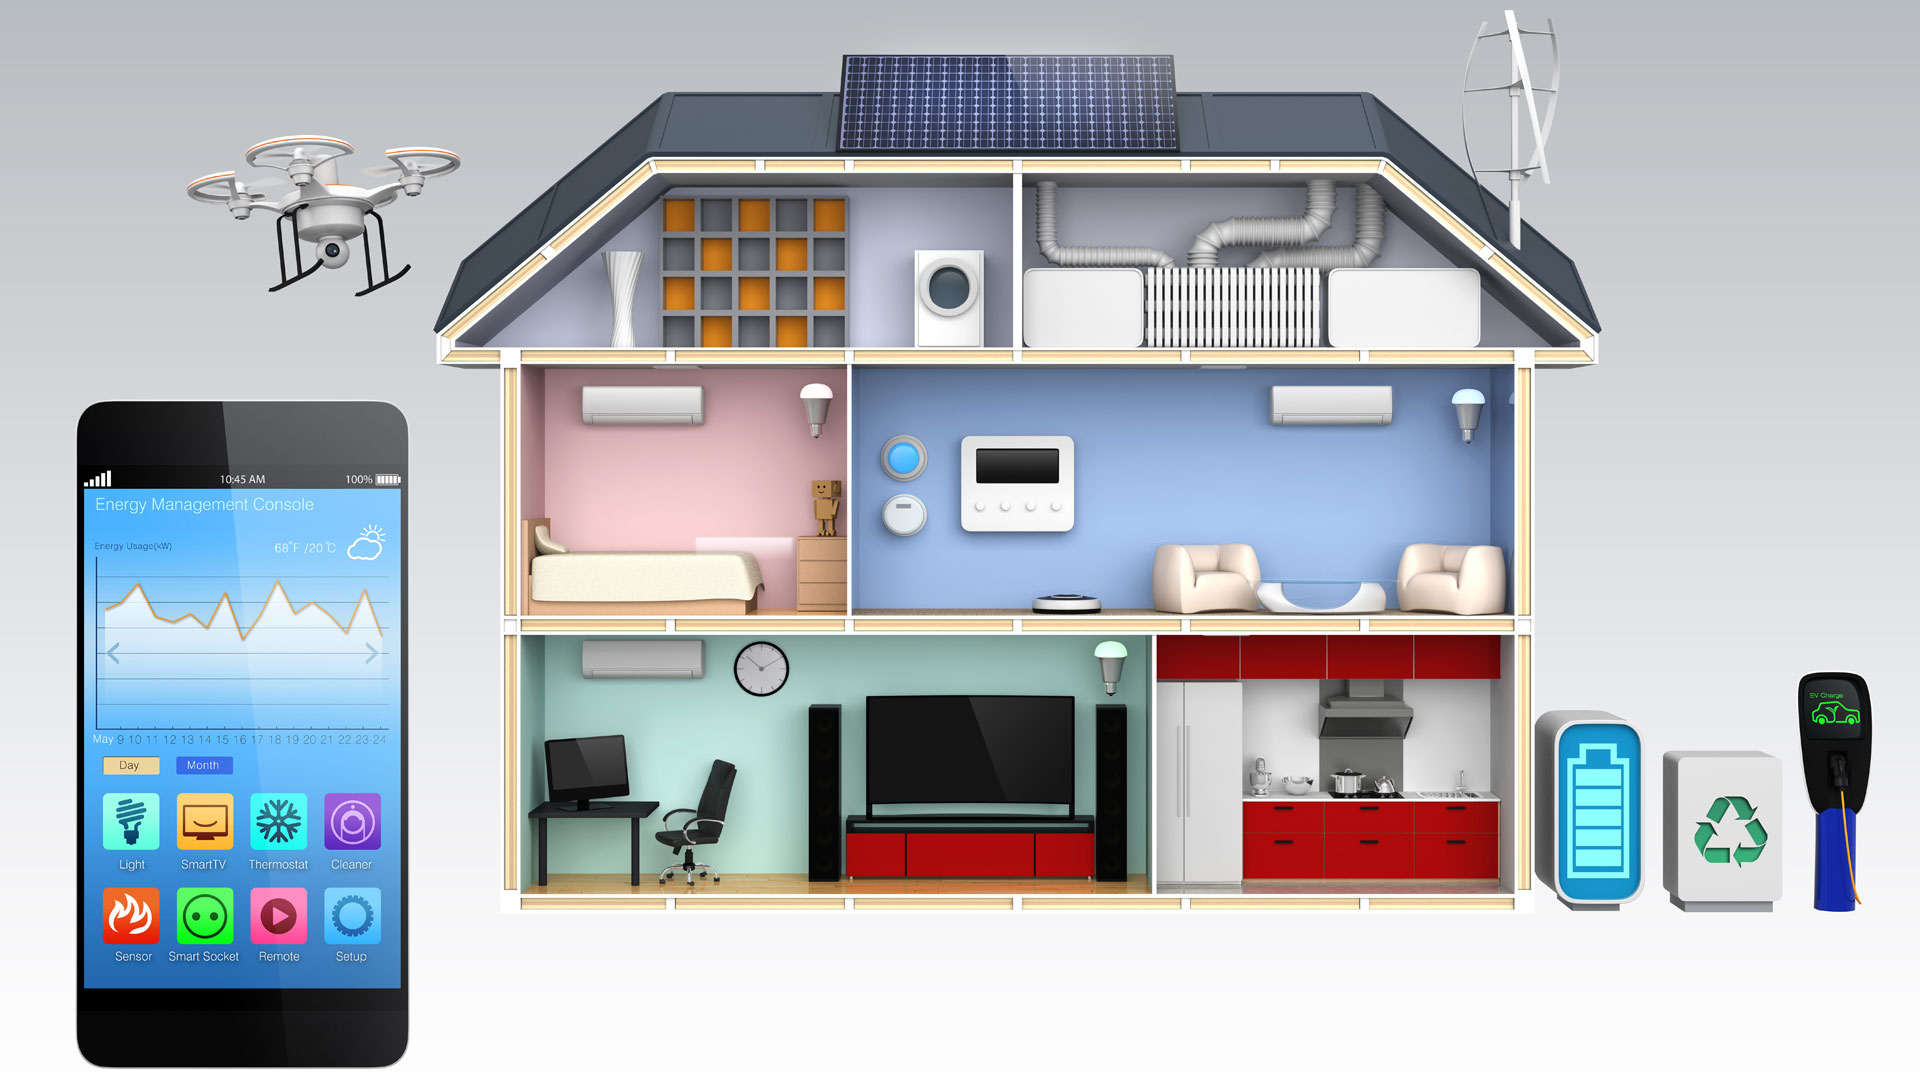 The Smart Grid includes the Smart Home